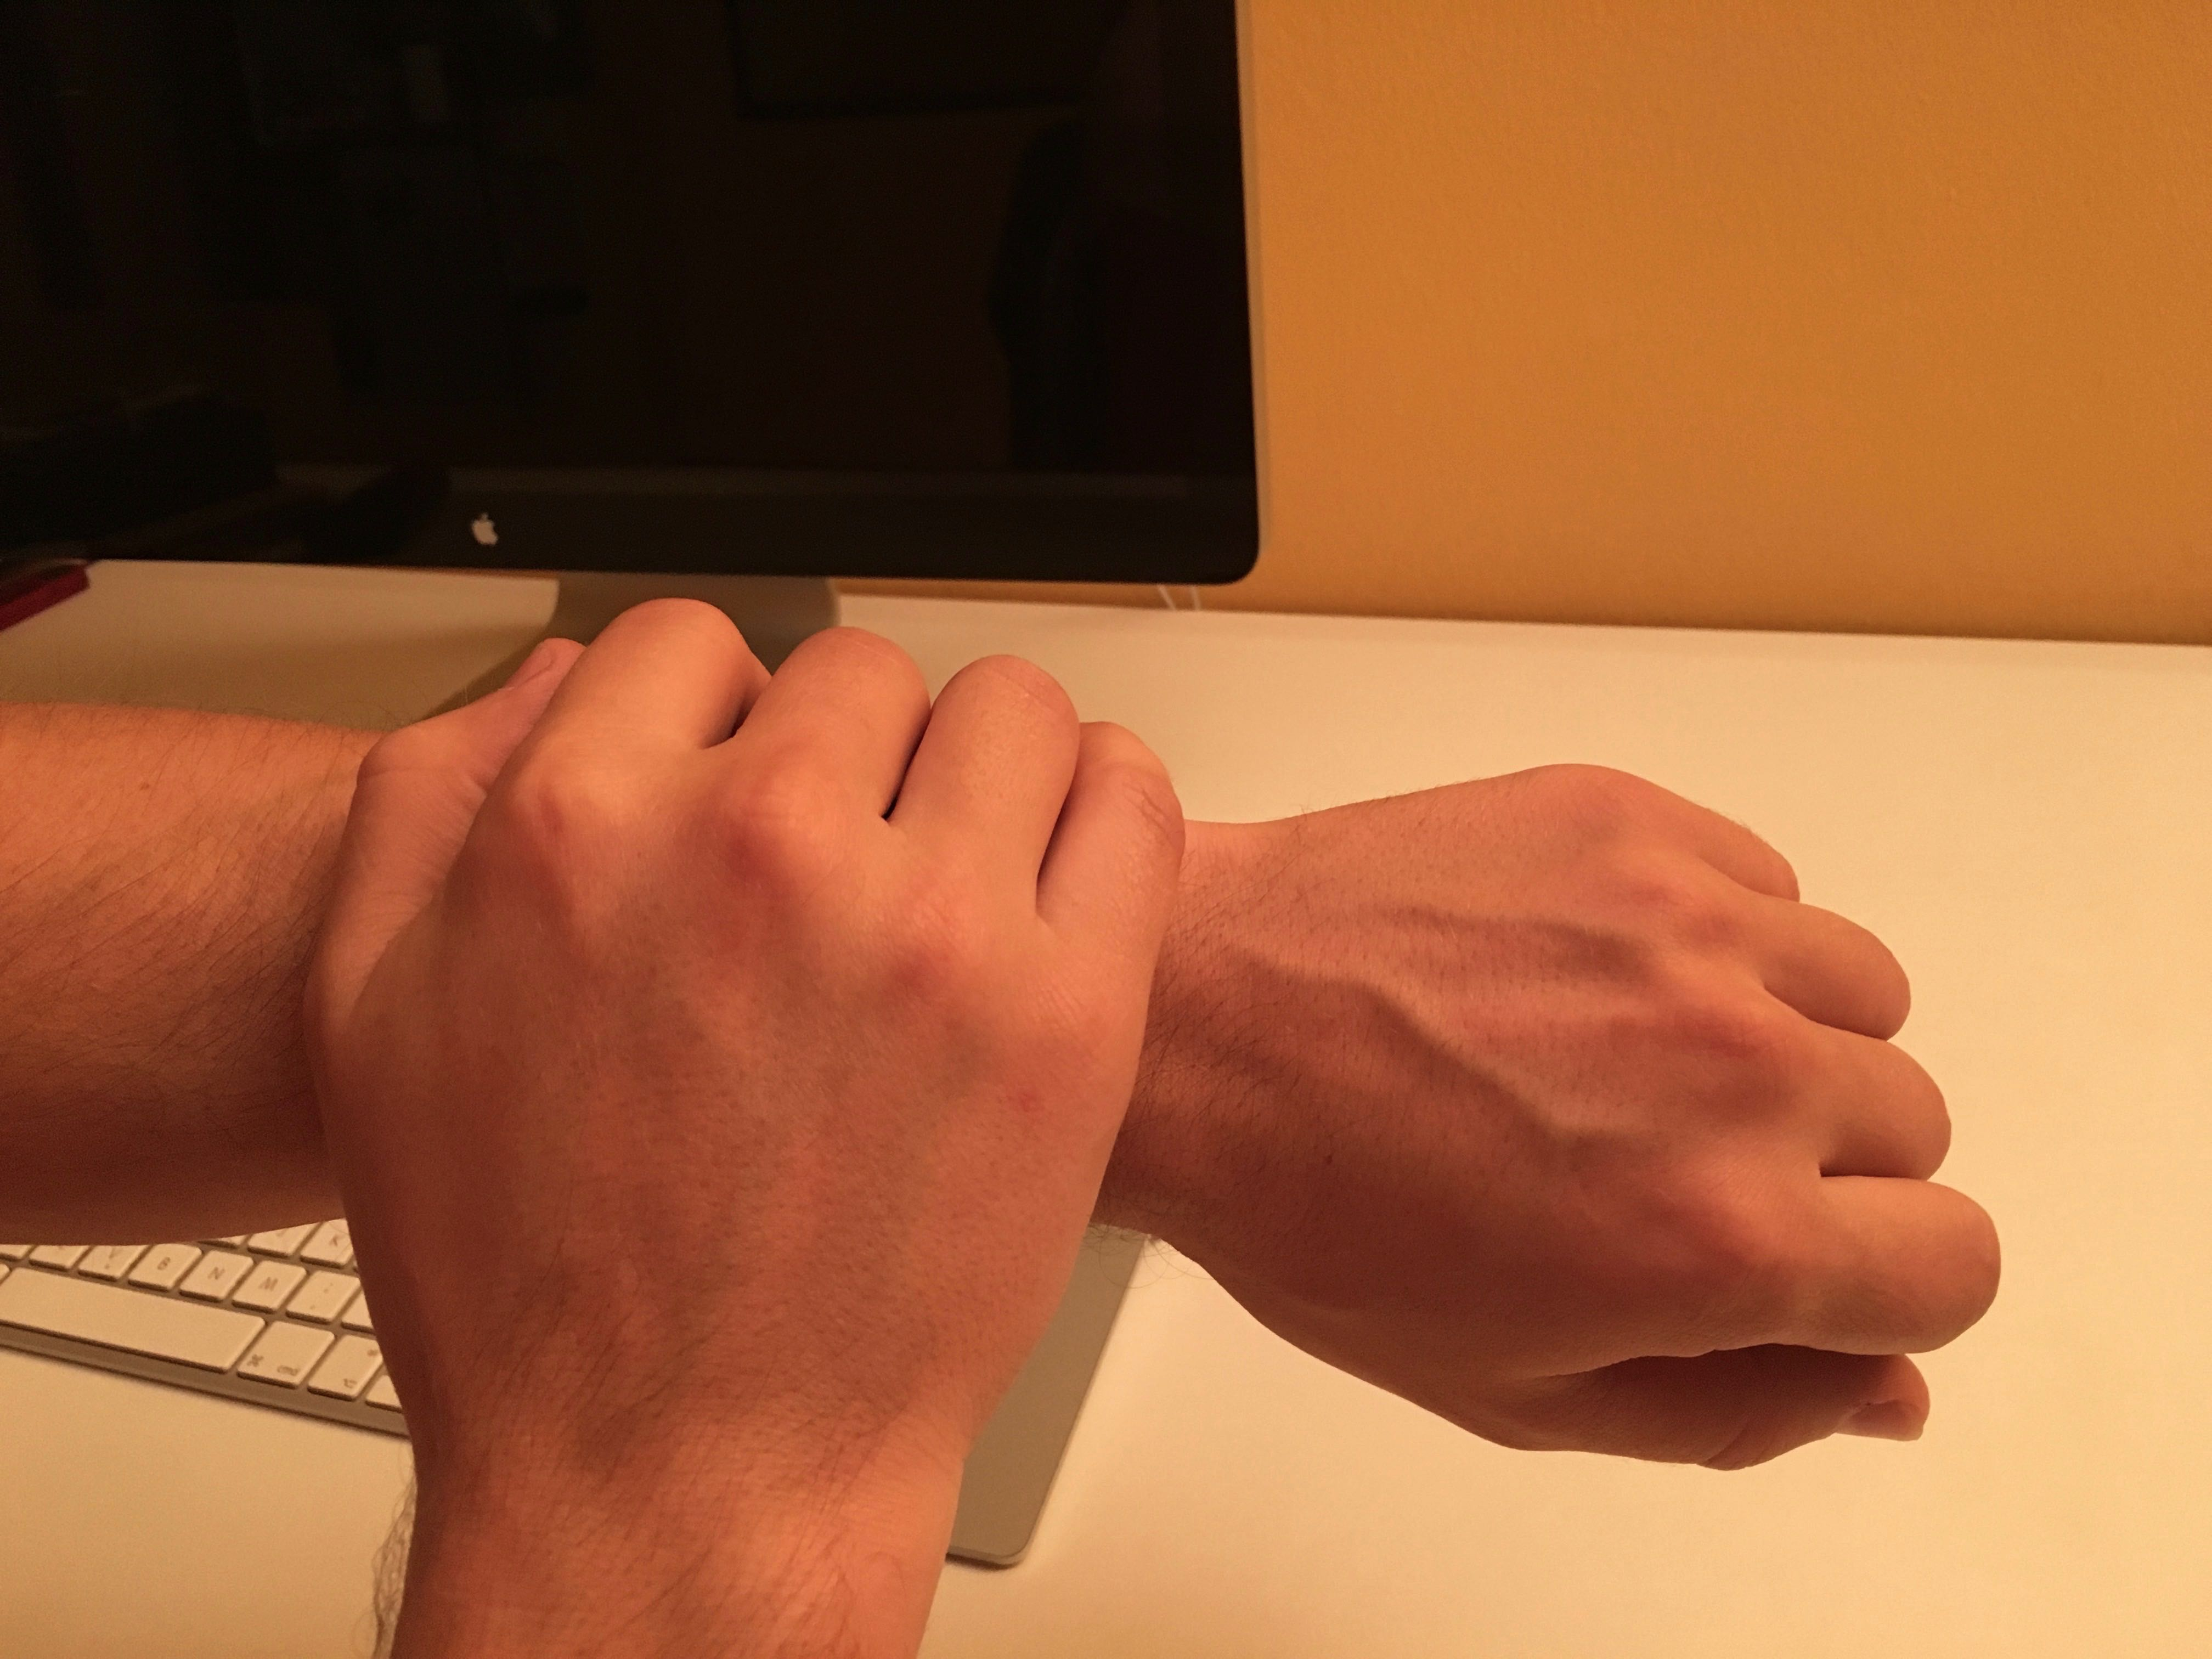 Silence Apple Watch with gesture